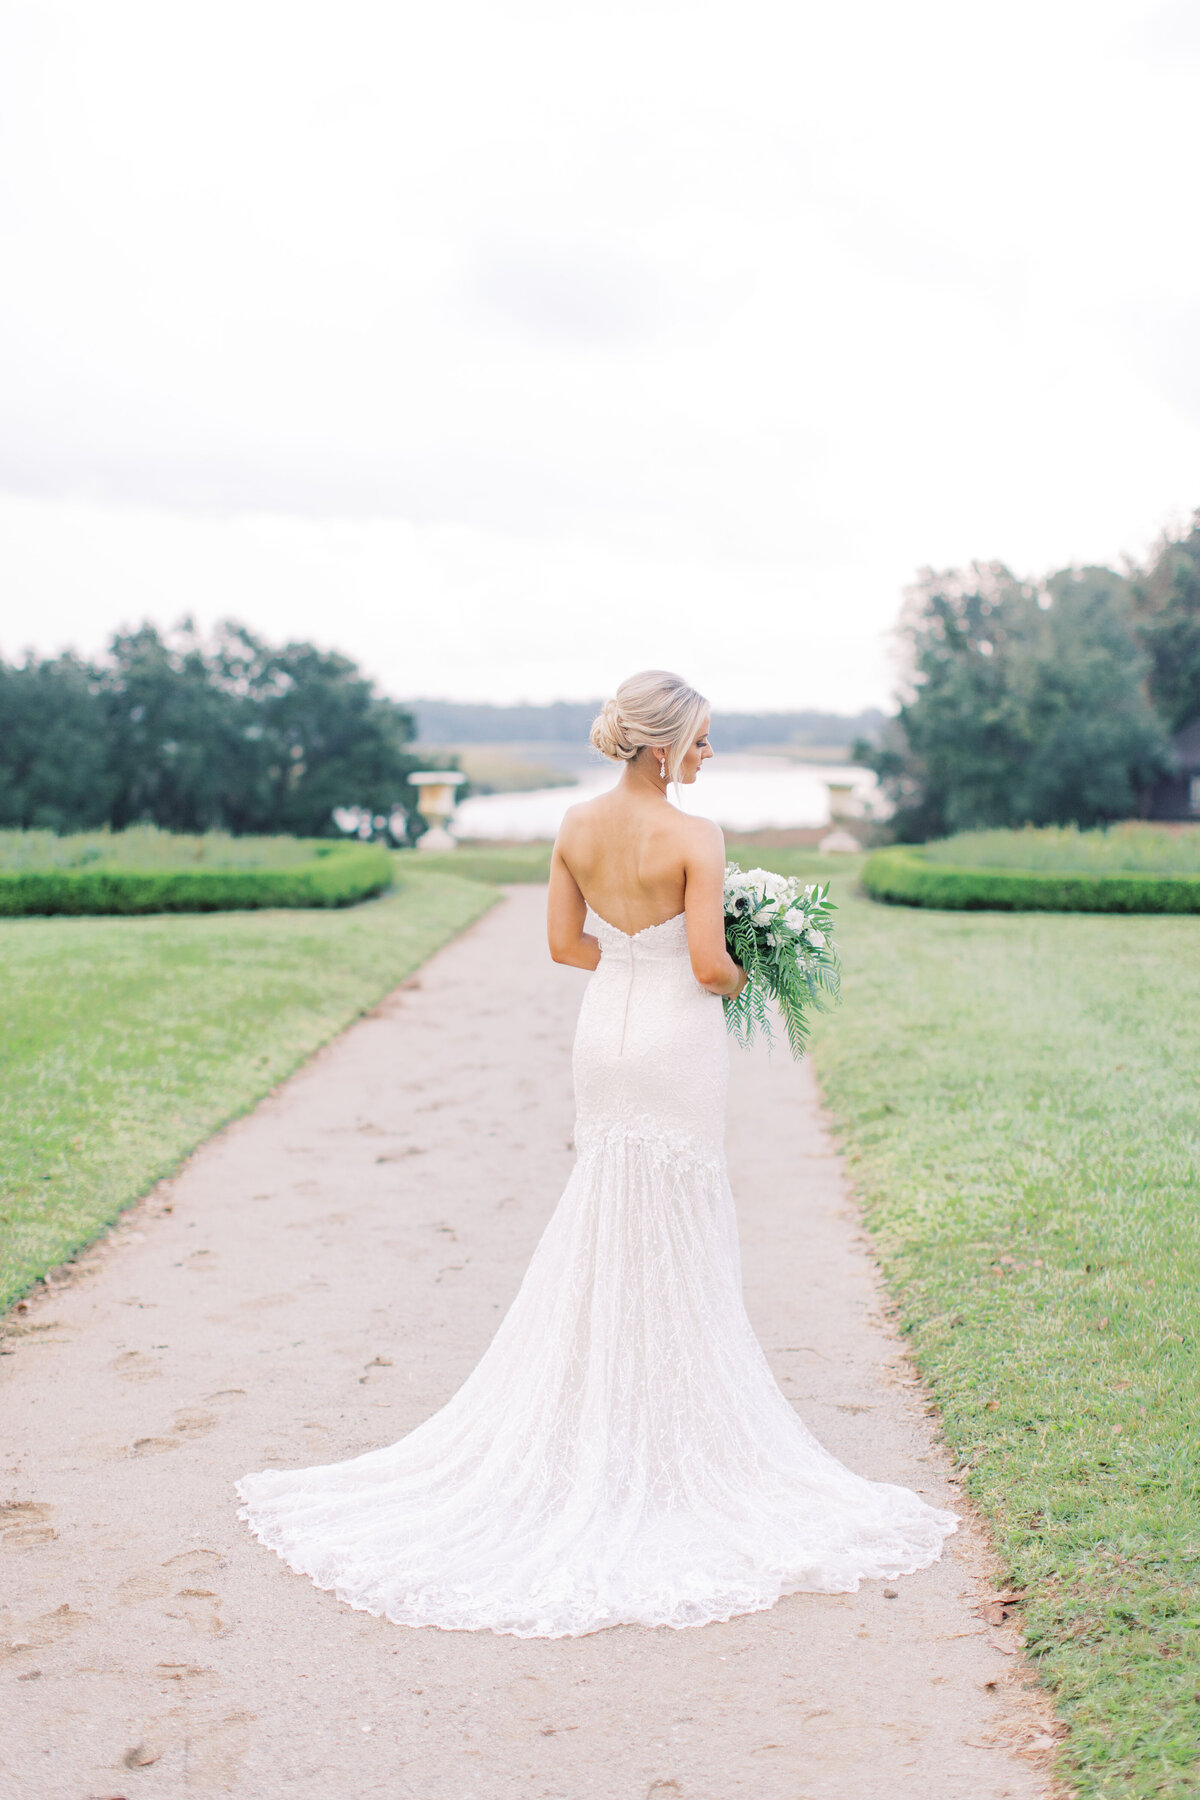 Melton_Wedding__Middleton_Place_Plantation_Charleston_South_Carolina_Jacksonville_Florida_Devon_Donnahoo_Photography__0289